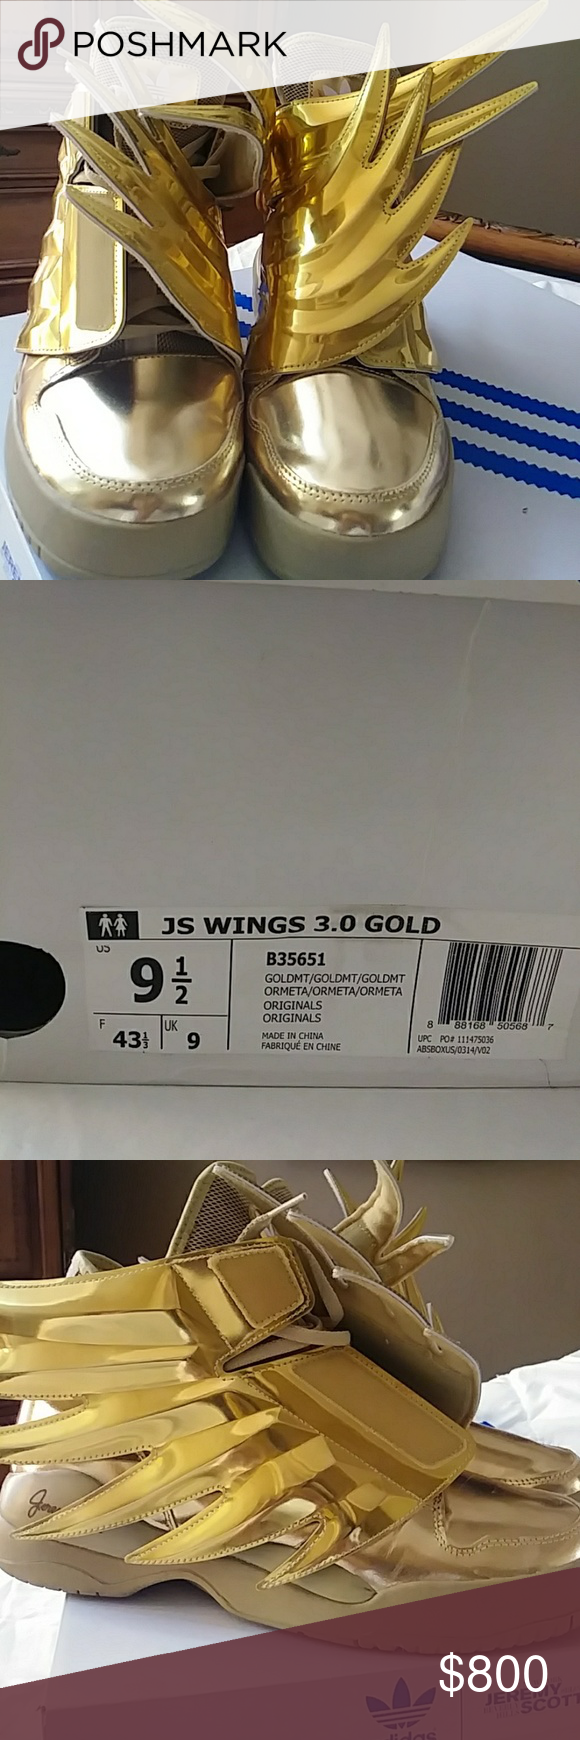 Jeremy Scott Wings 3 0 Gold Rare Limited Used In Excellent Condition Ships With Original Box Adidas Shoes Sneakers Adidas Wedding Sneaker Things To Sell